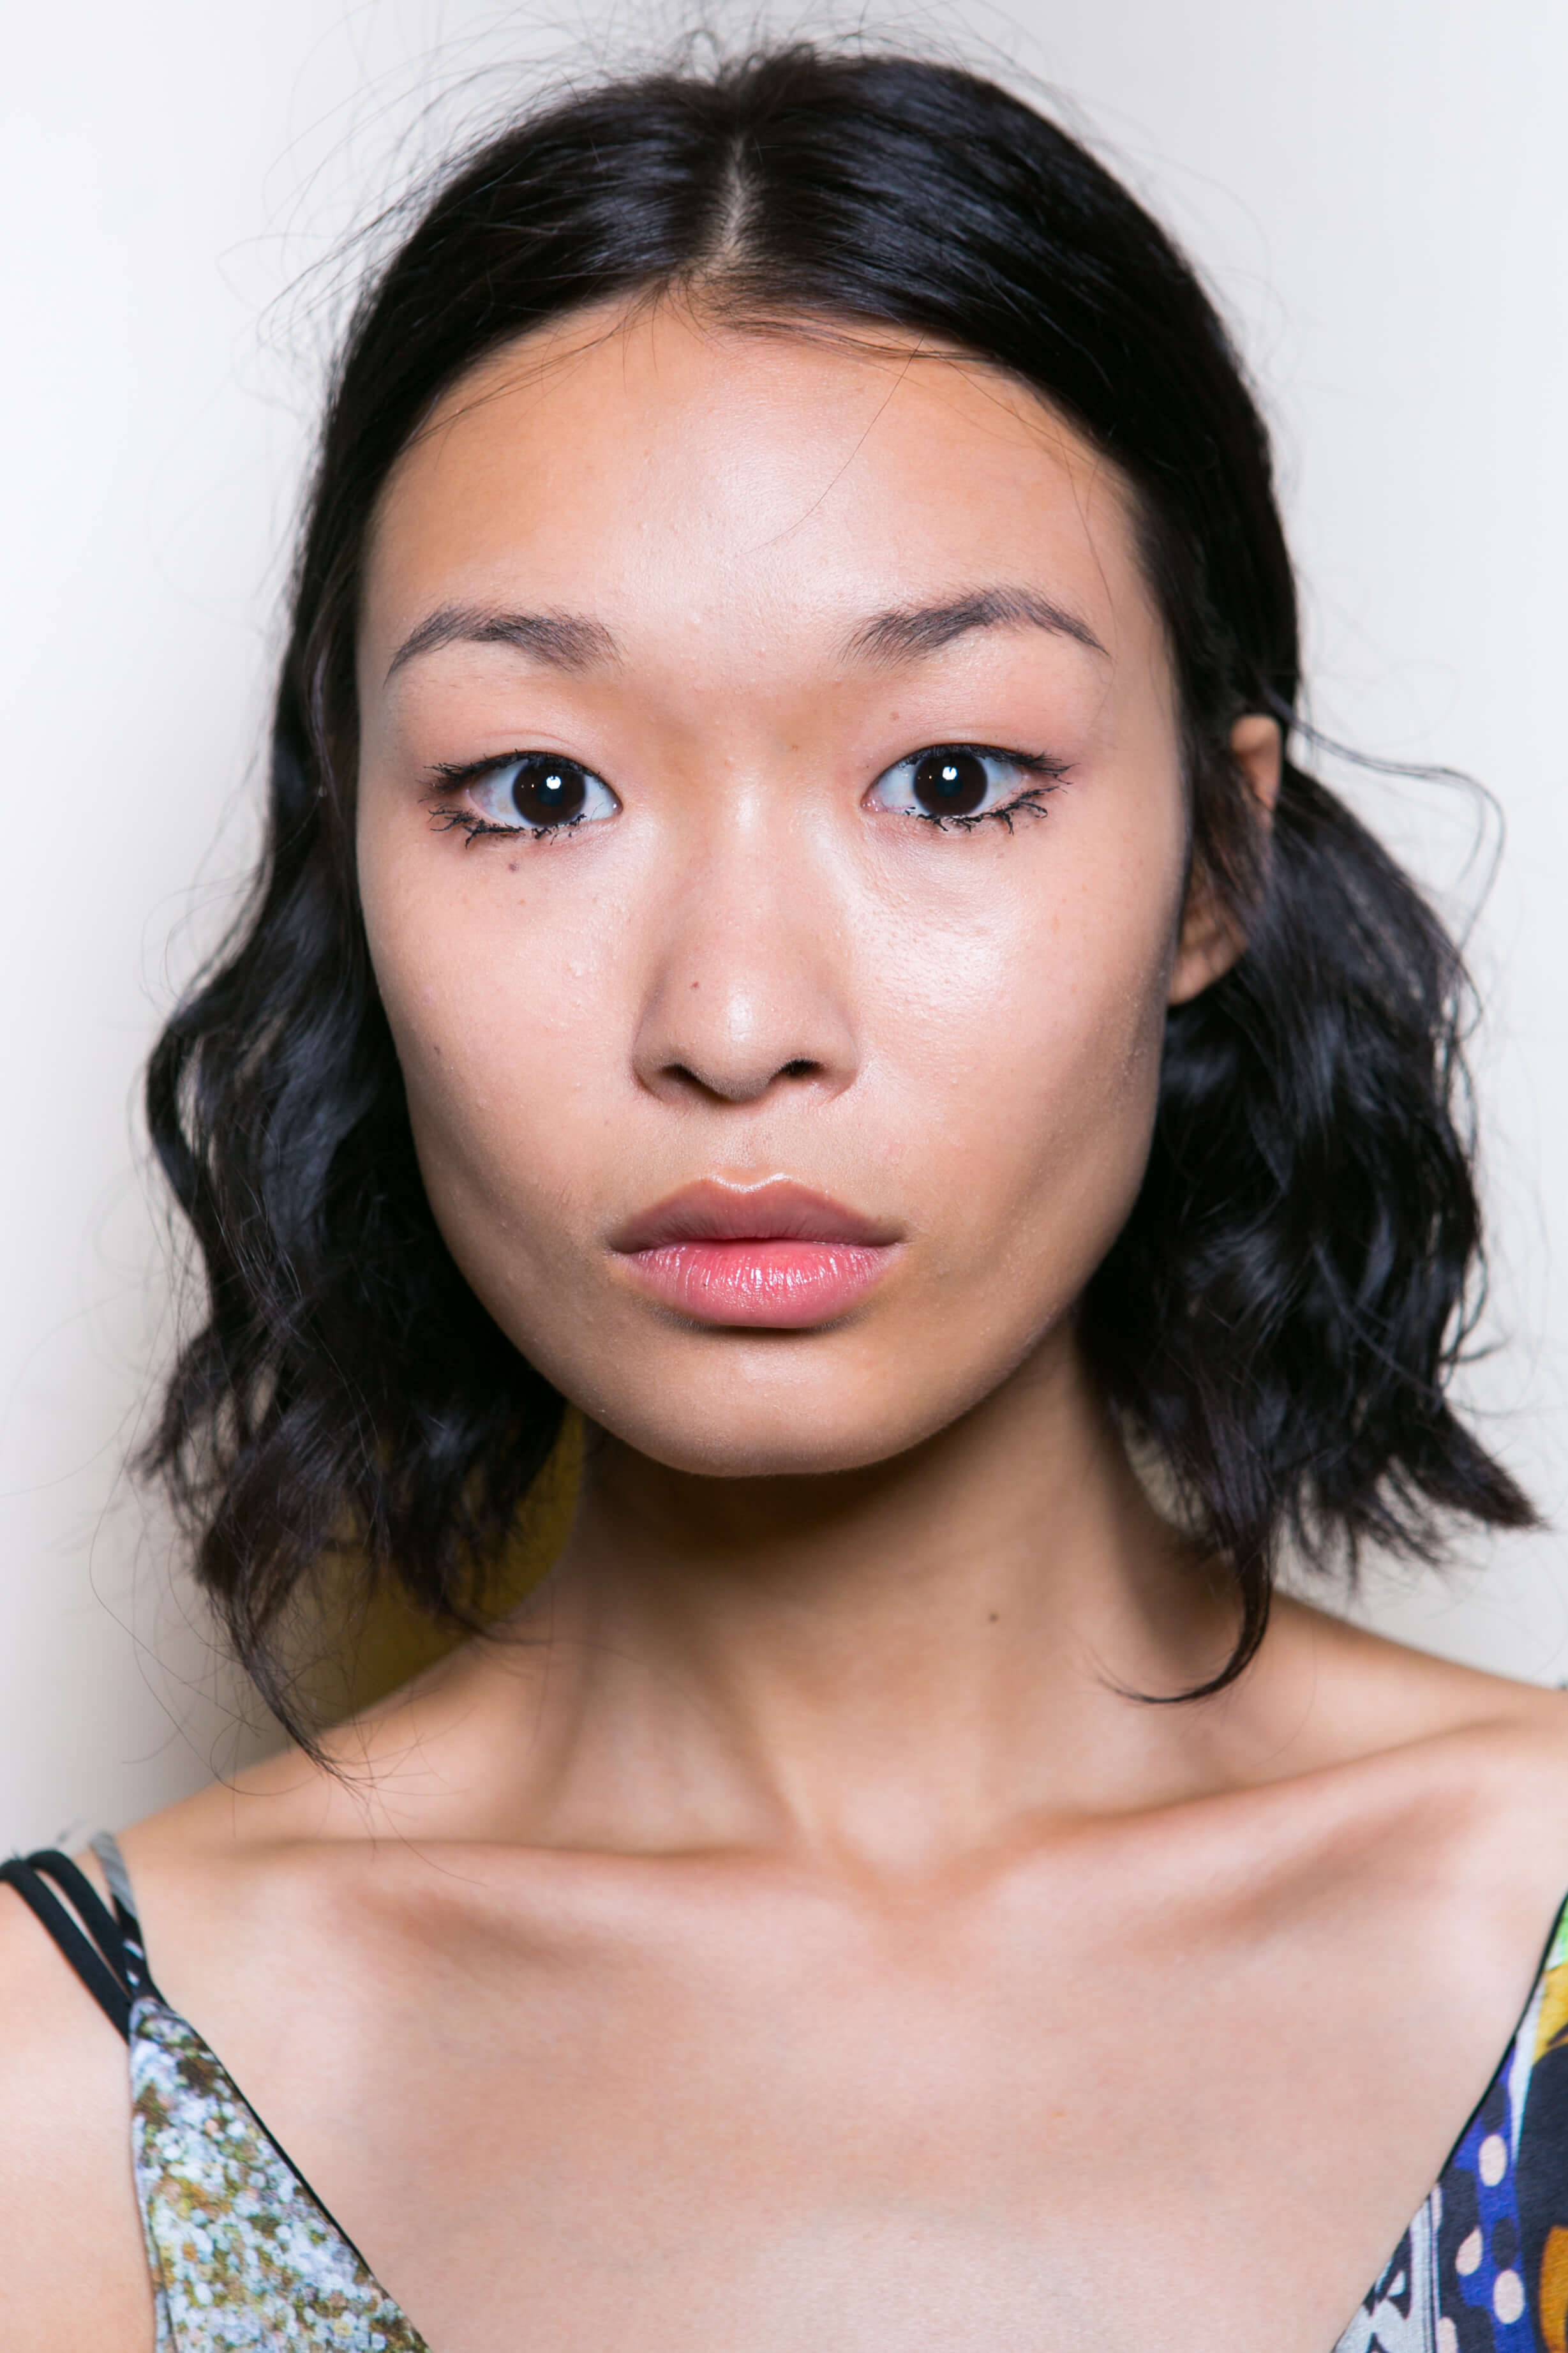 Fashionable haircuts: wavy Asian bob